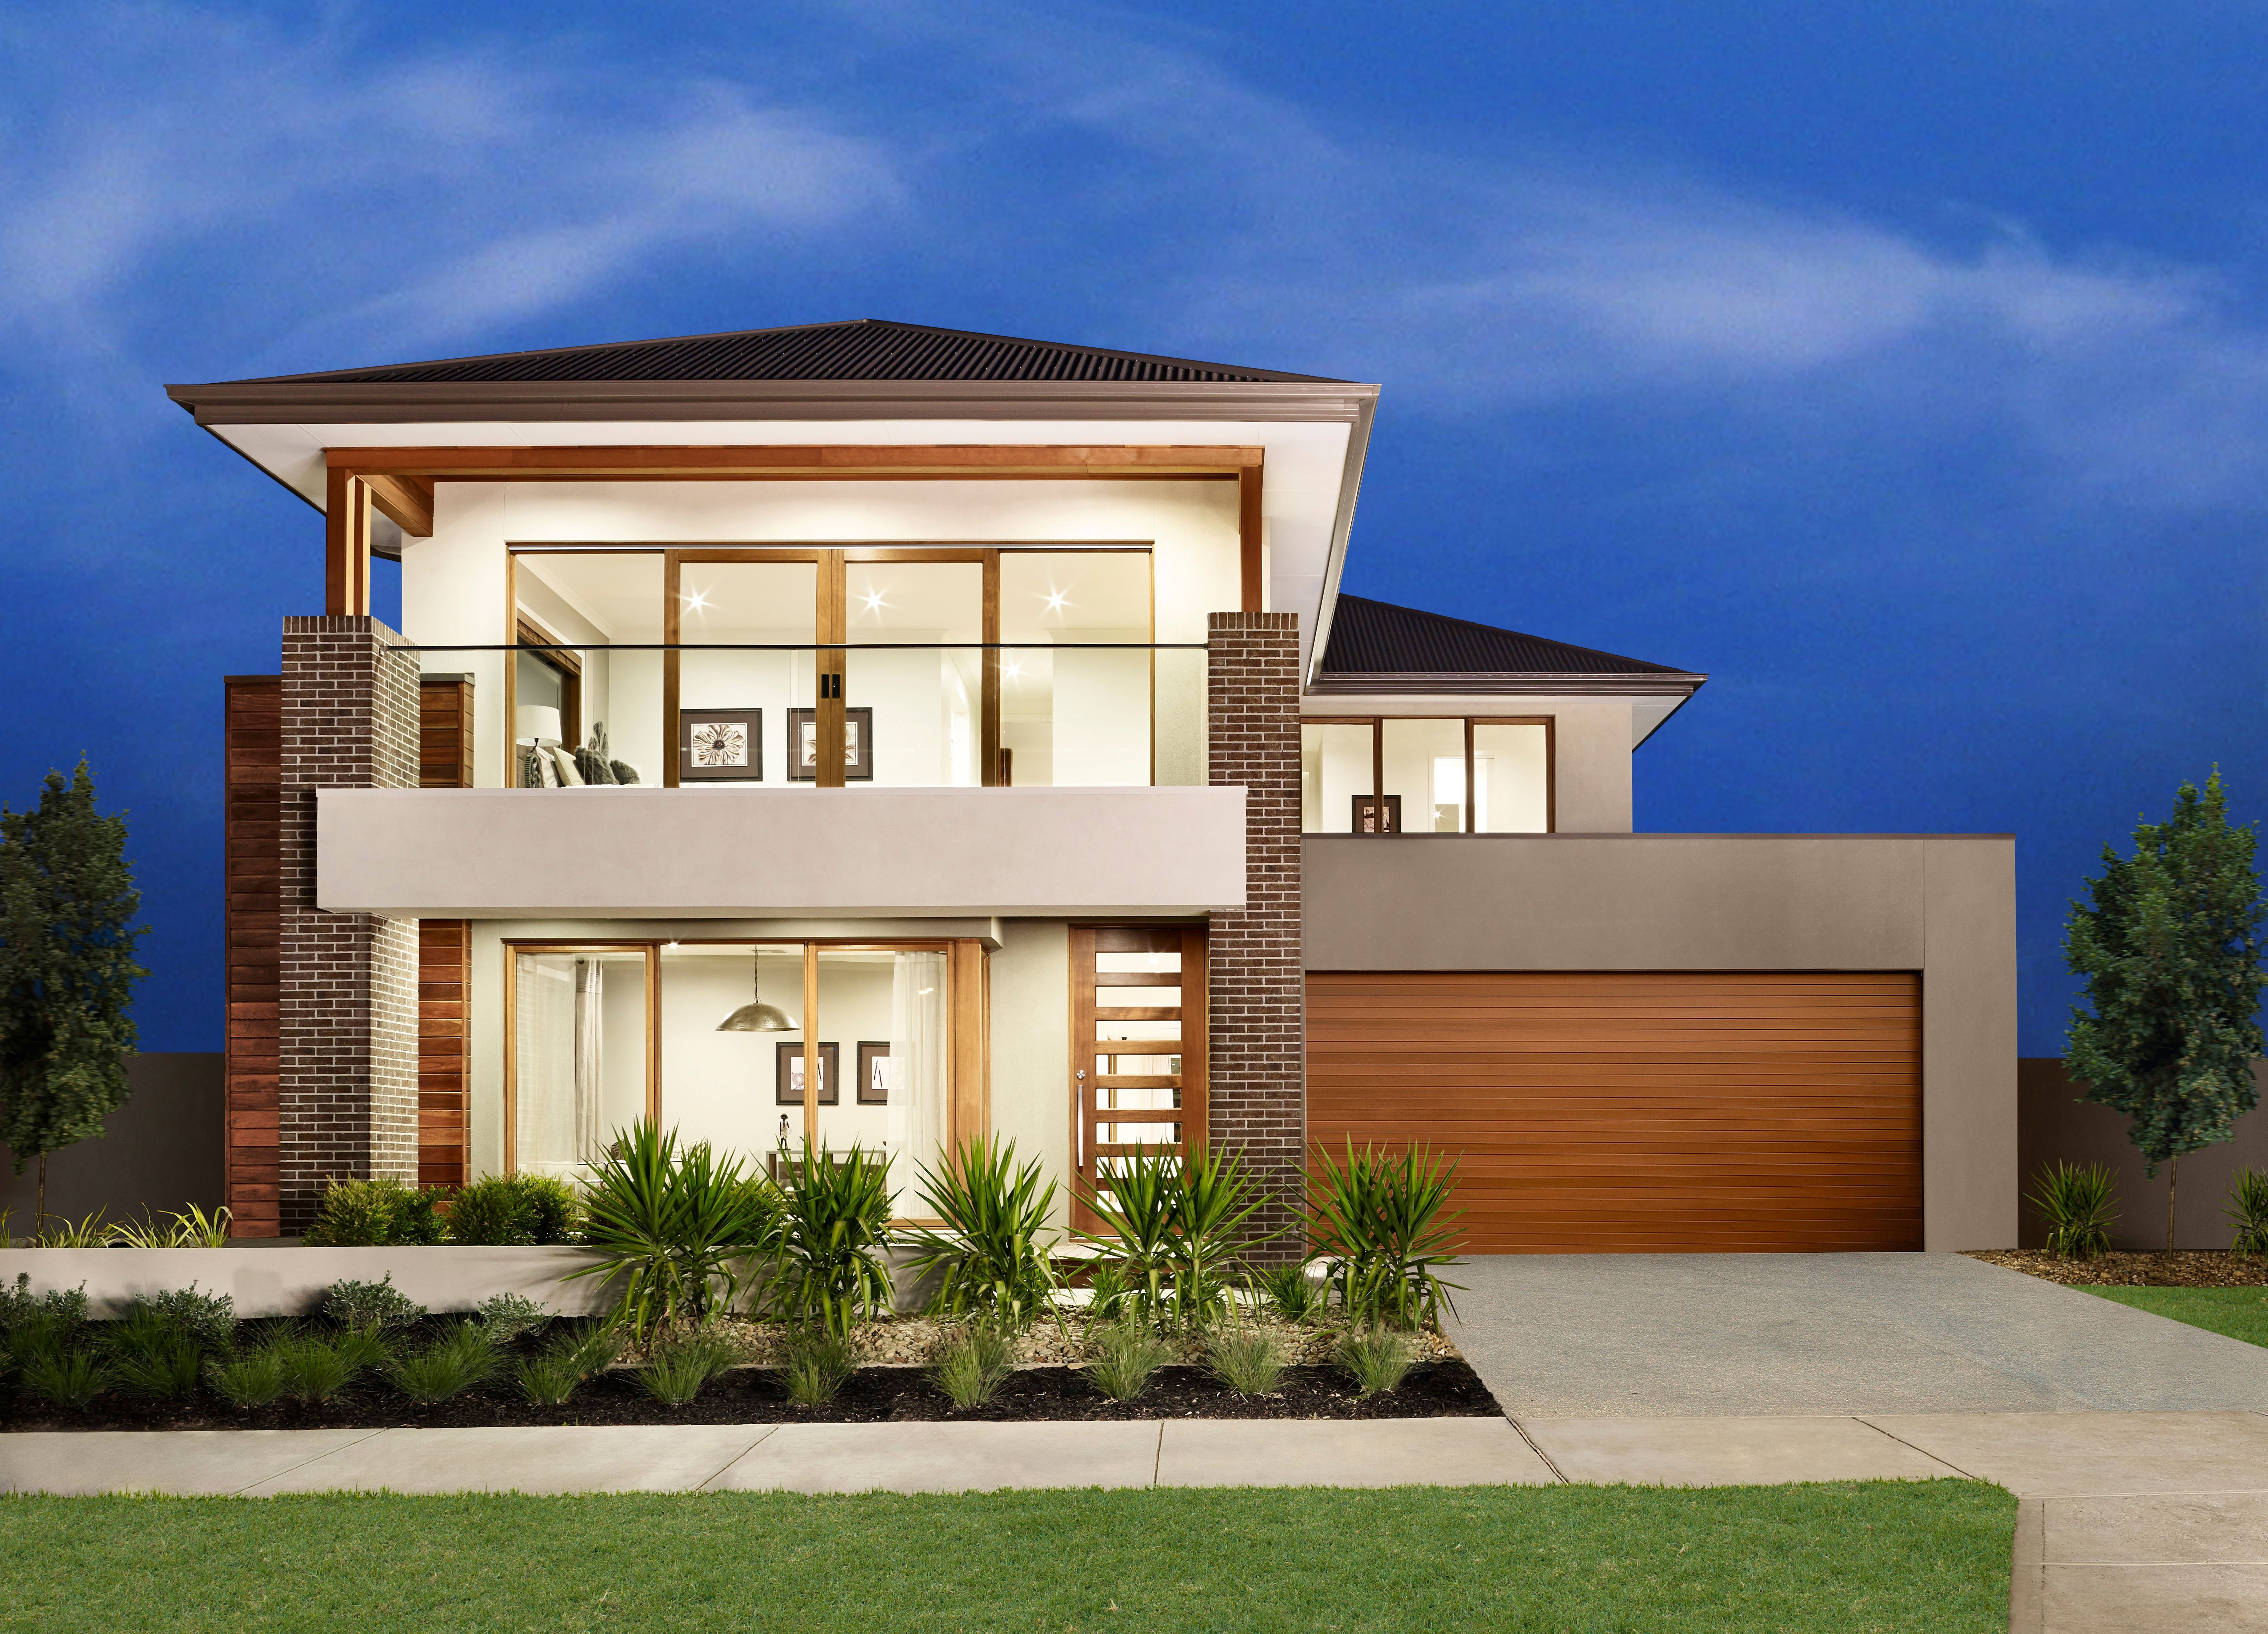 An eye catching modern facade with wide balcony leading for Double storey house plans with balcony